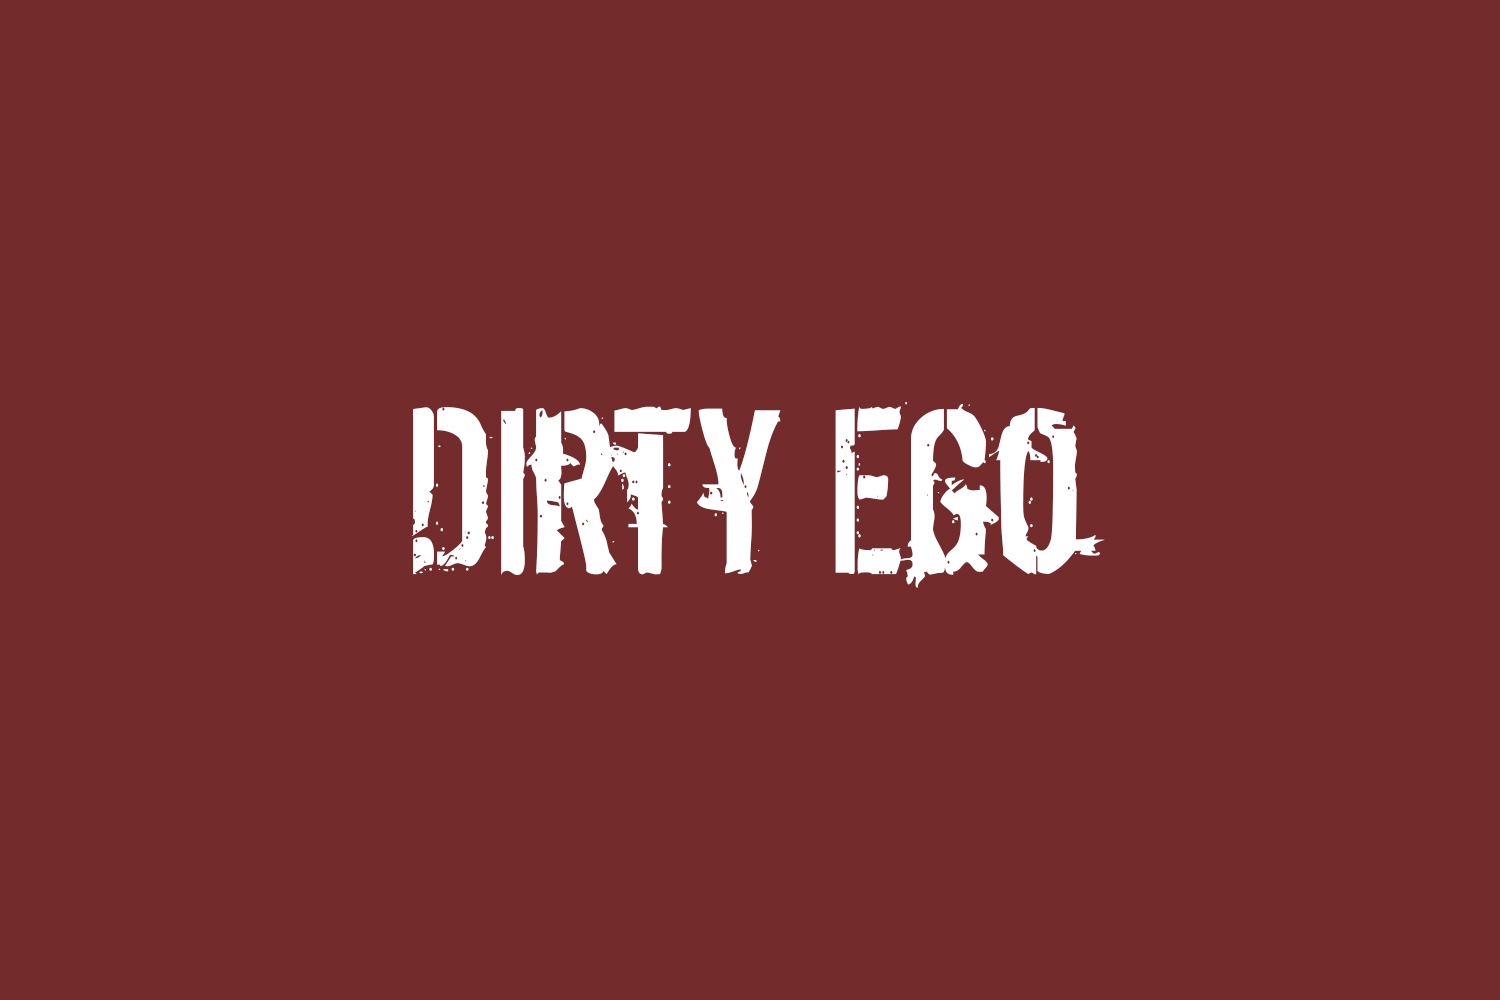 Dirty Ego